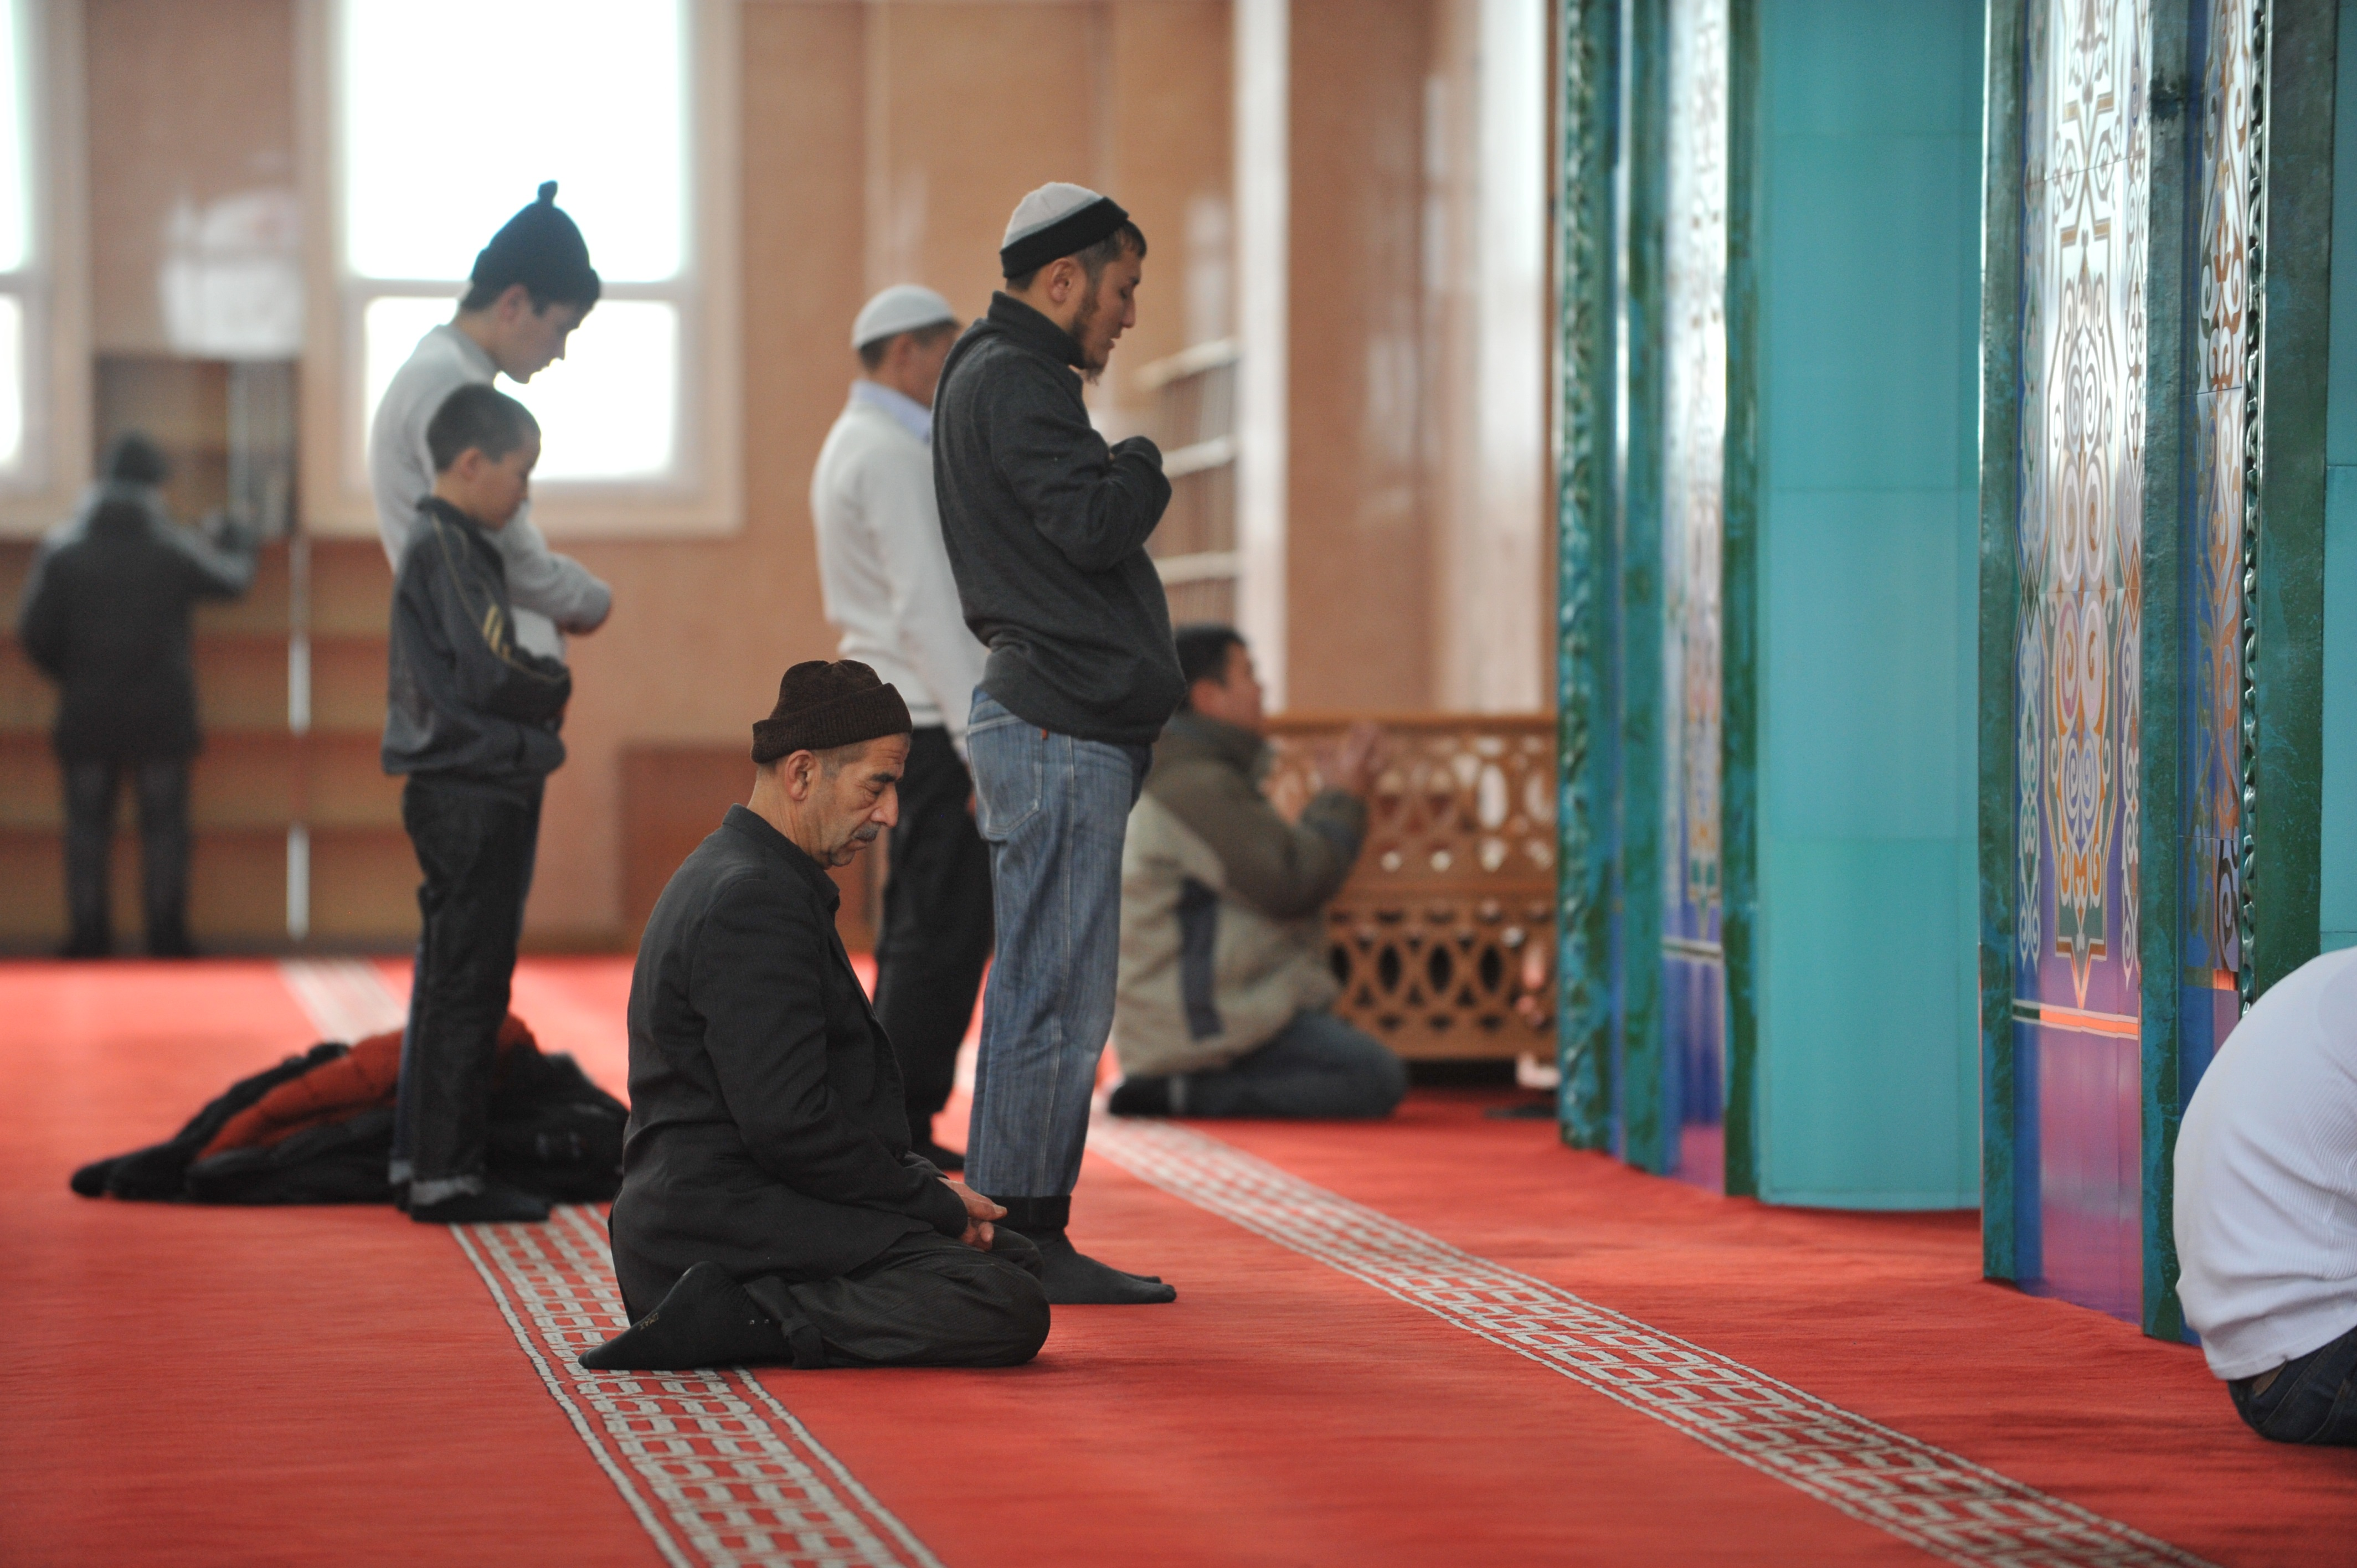 Kazakhstanis voice concern over religious knowledge of country's imams